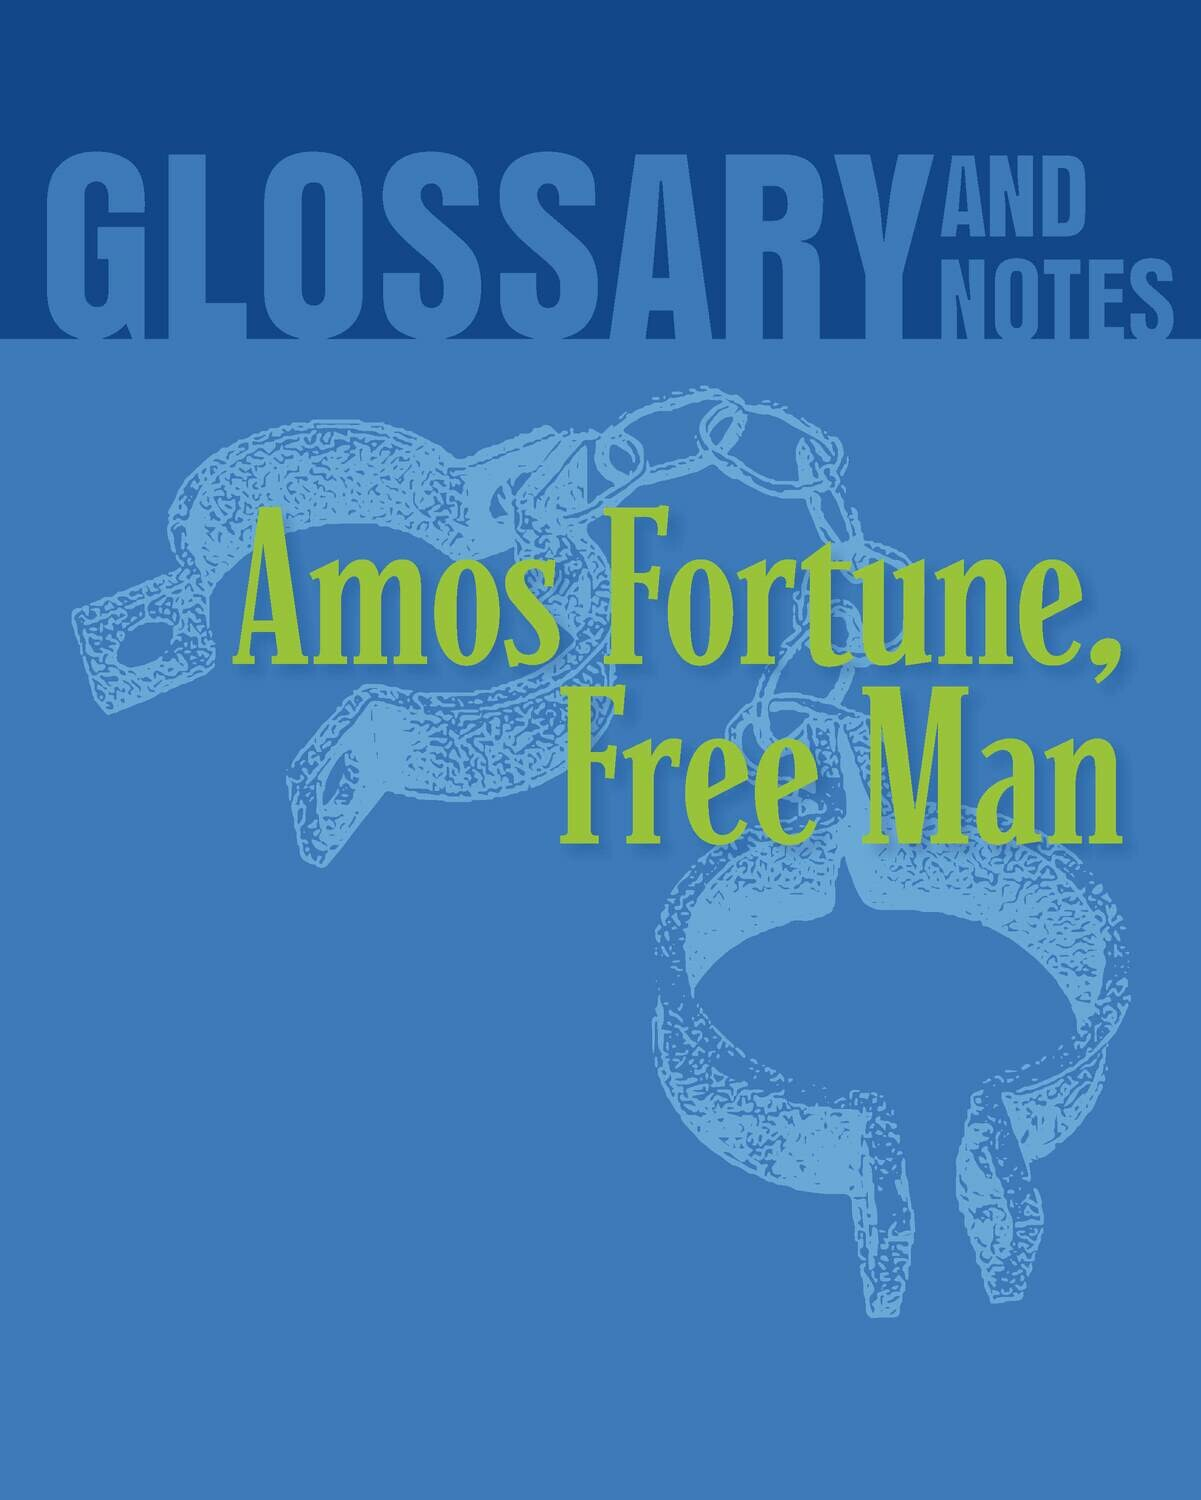 Glossary and Notes: Amos Fortune, Free Man